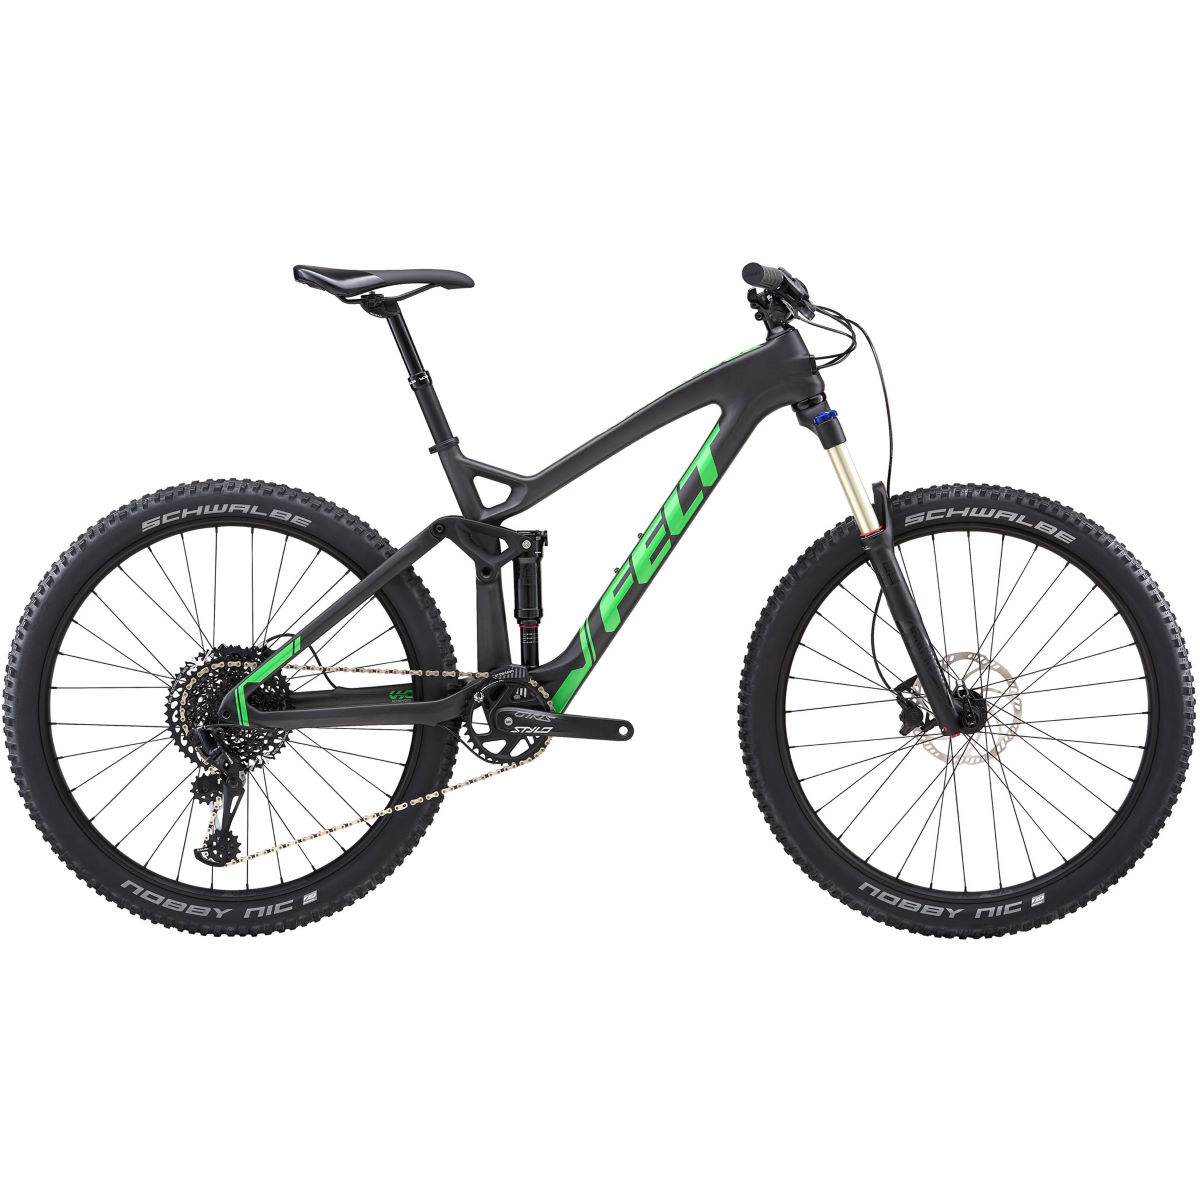 VTT tout suspendu Felt Decree 4 (2018) - 20'' Stock Bike